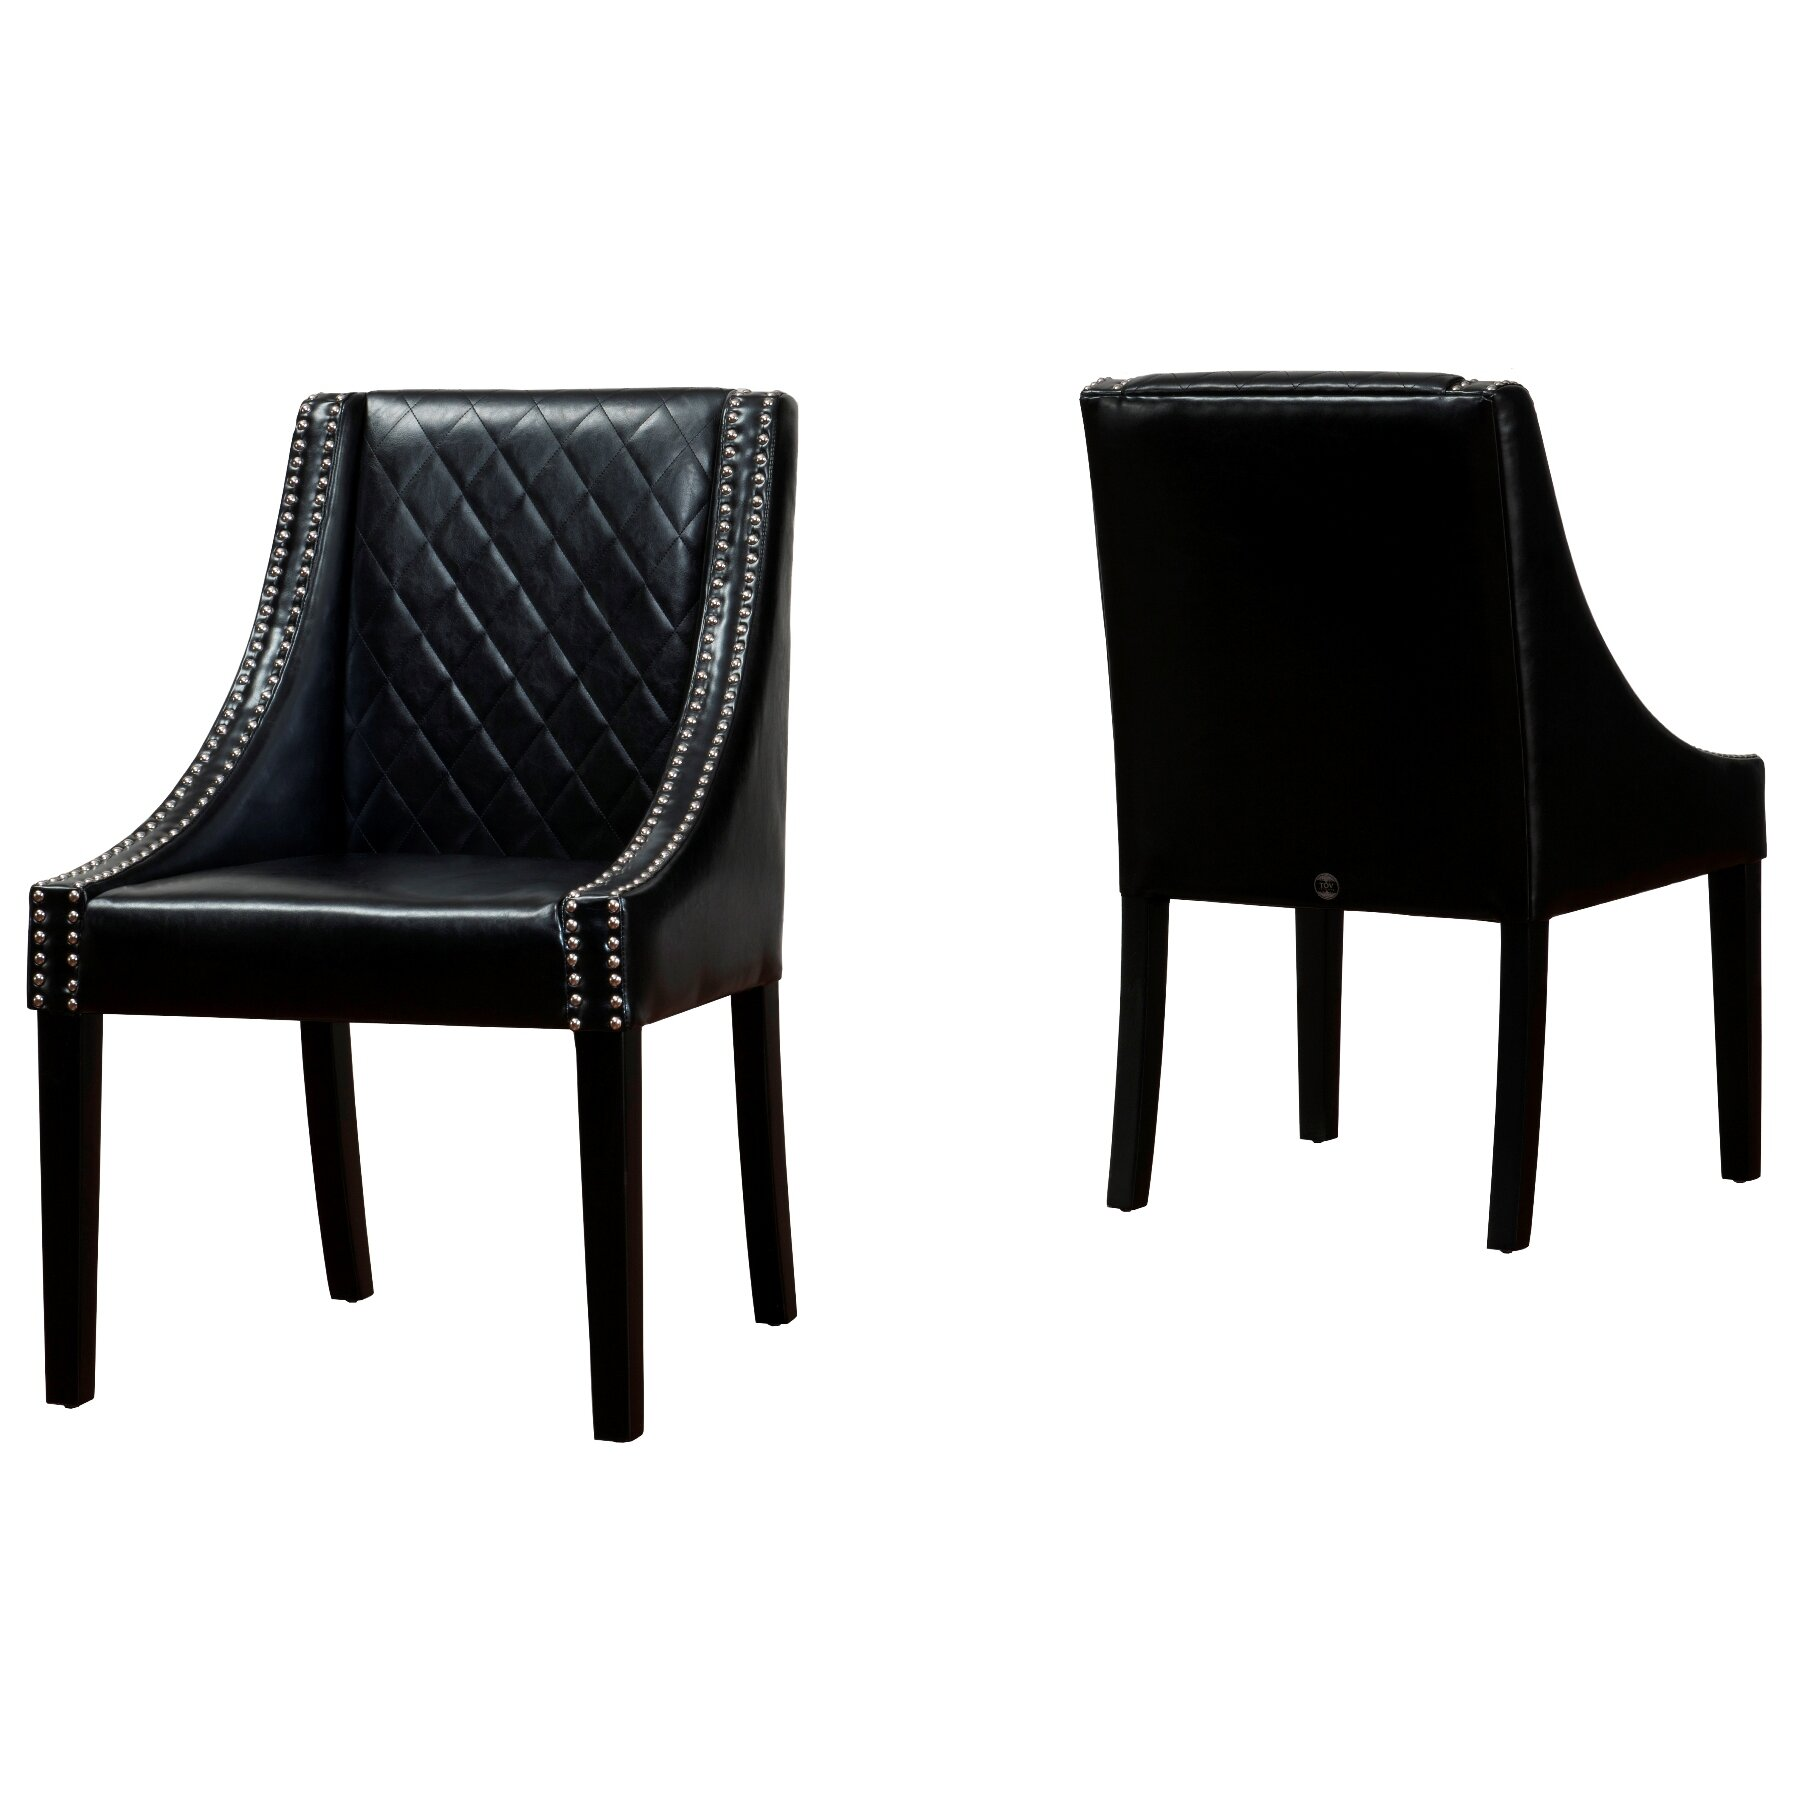 Black upholstered dining chairs - Lenox Genuine Leather Upholstered Dining Chair